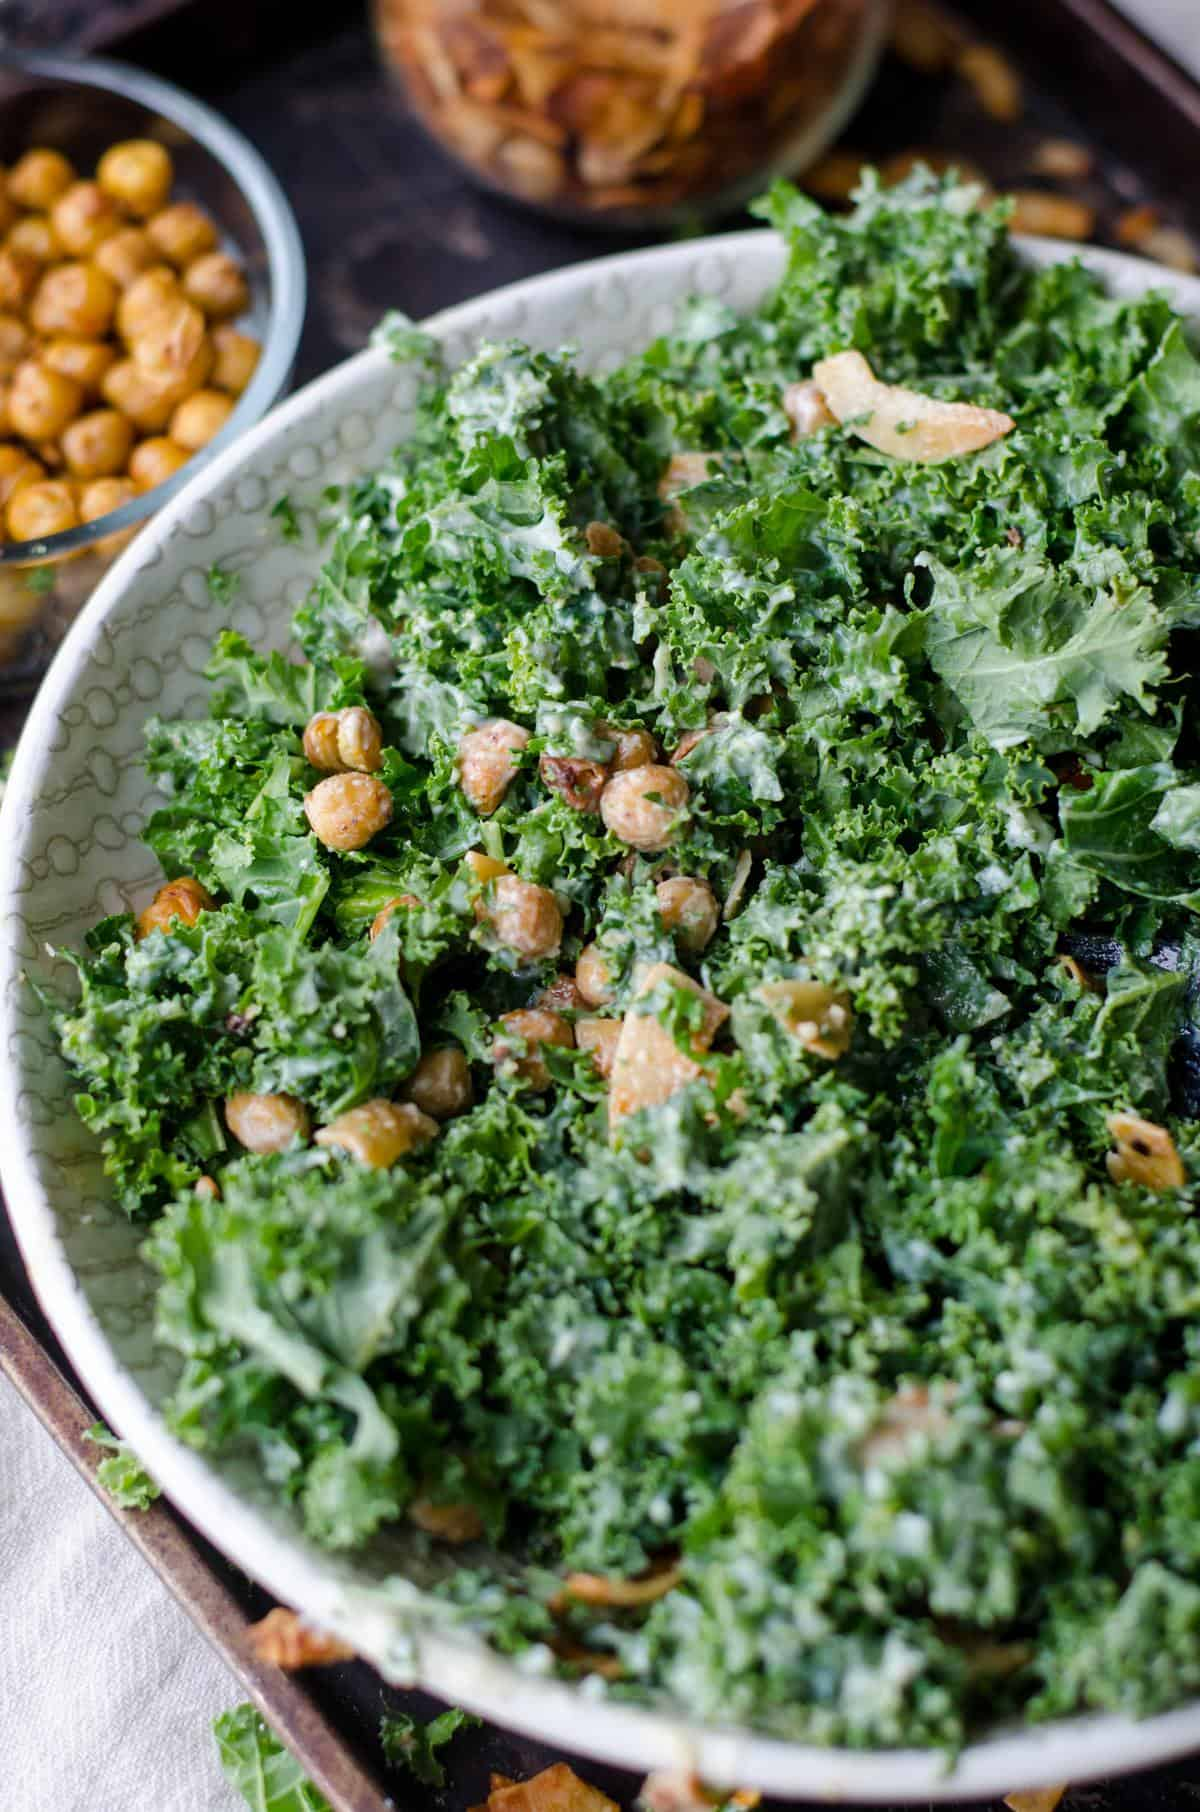 Close up of kale and chickpea salad.